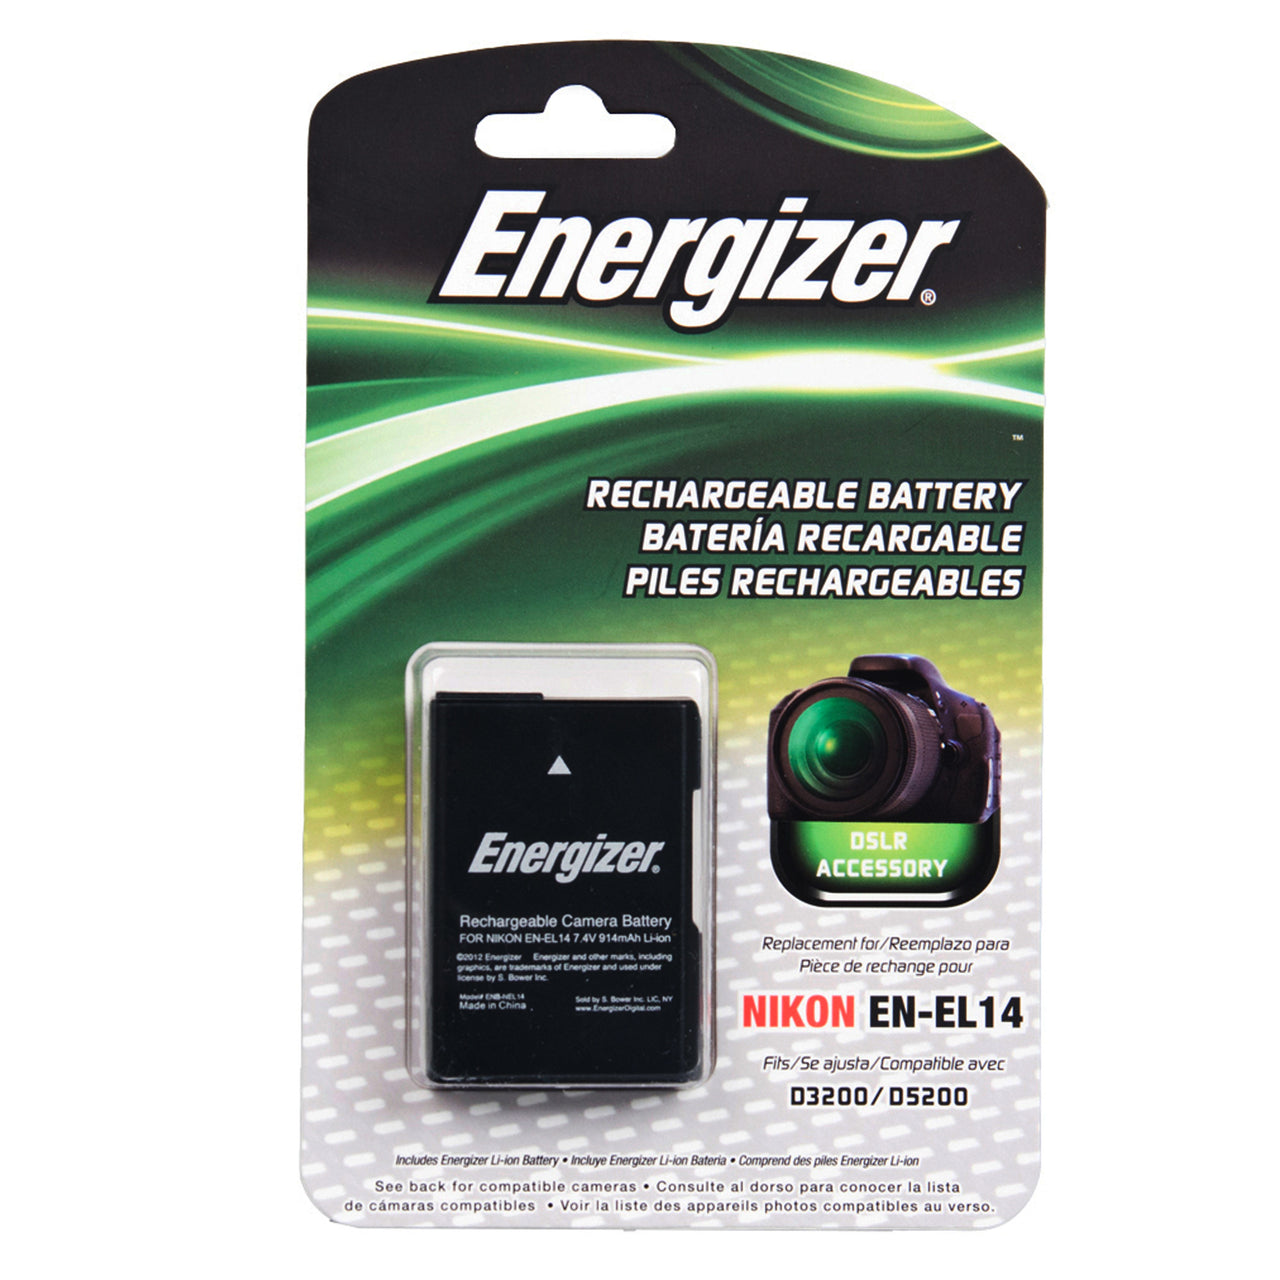 Energizer® ENB-NEL14 Digital Replacement Battery for Nikon EN-EL14